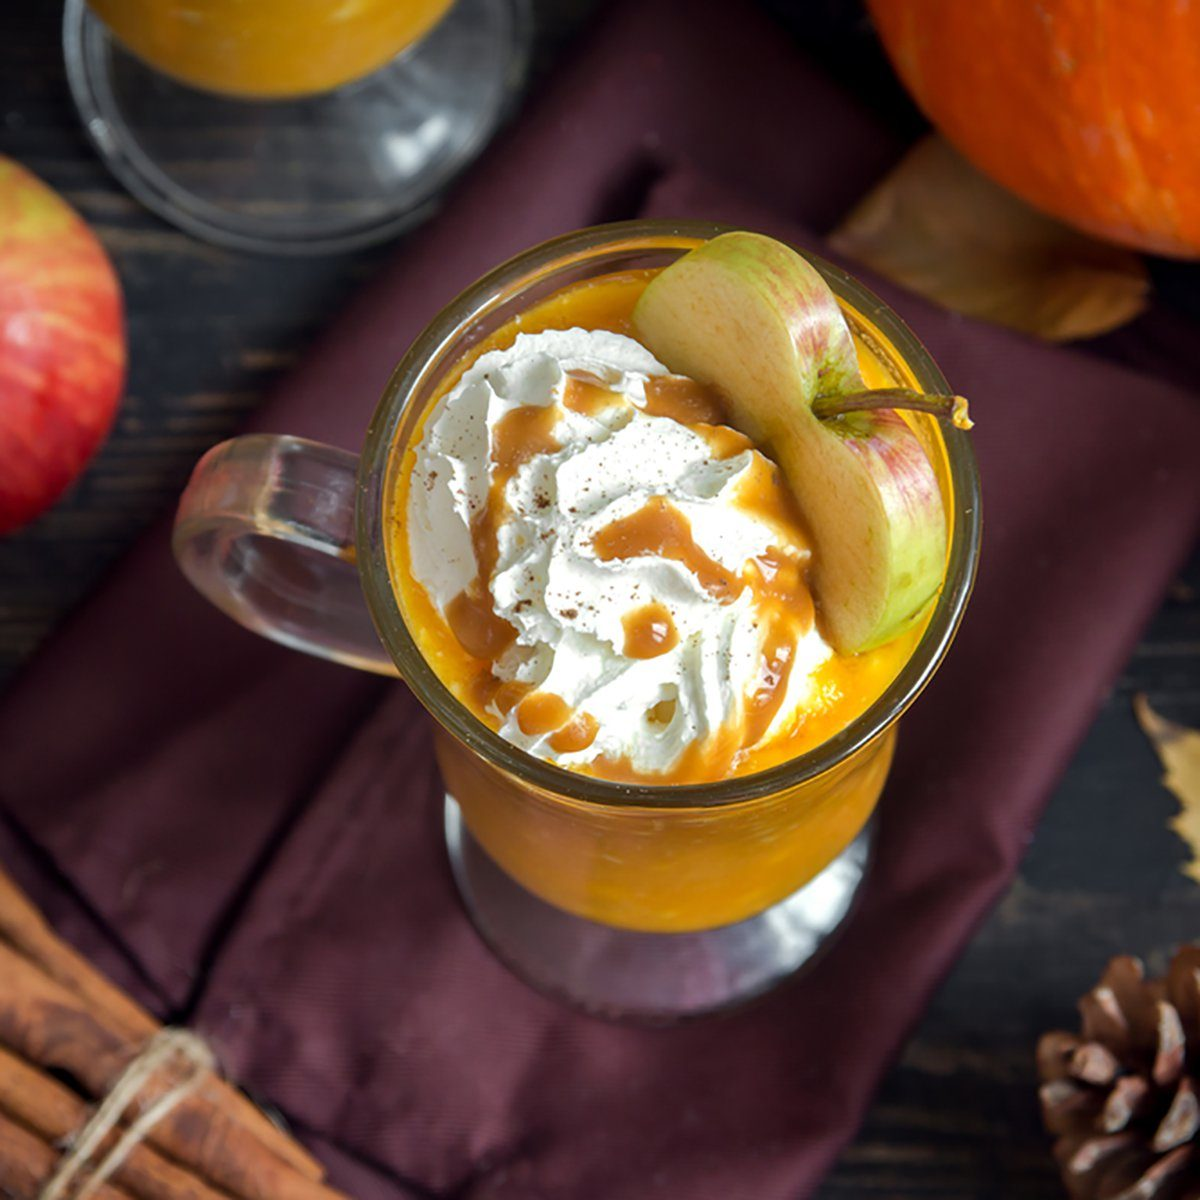 Apple Cider Floats with caramel sauce and pumpkin pie spices.